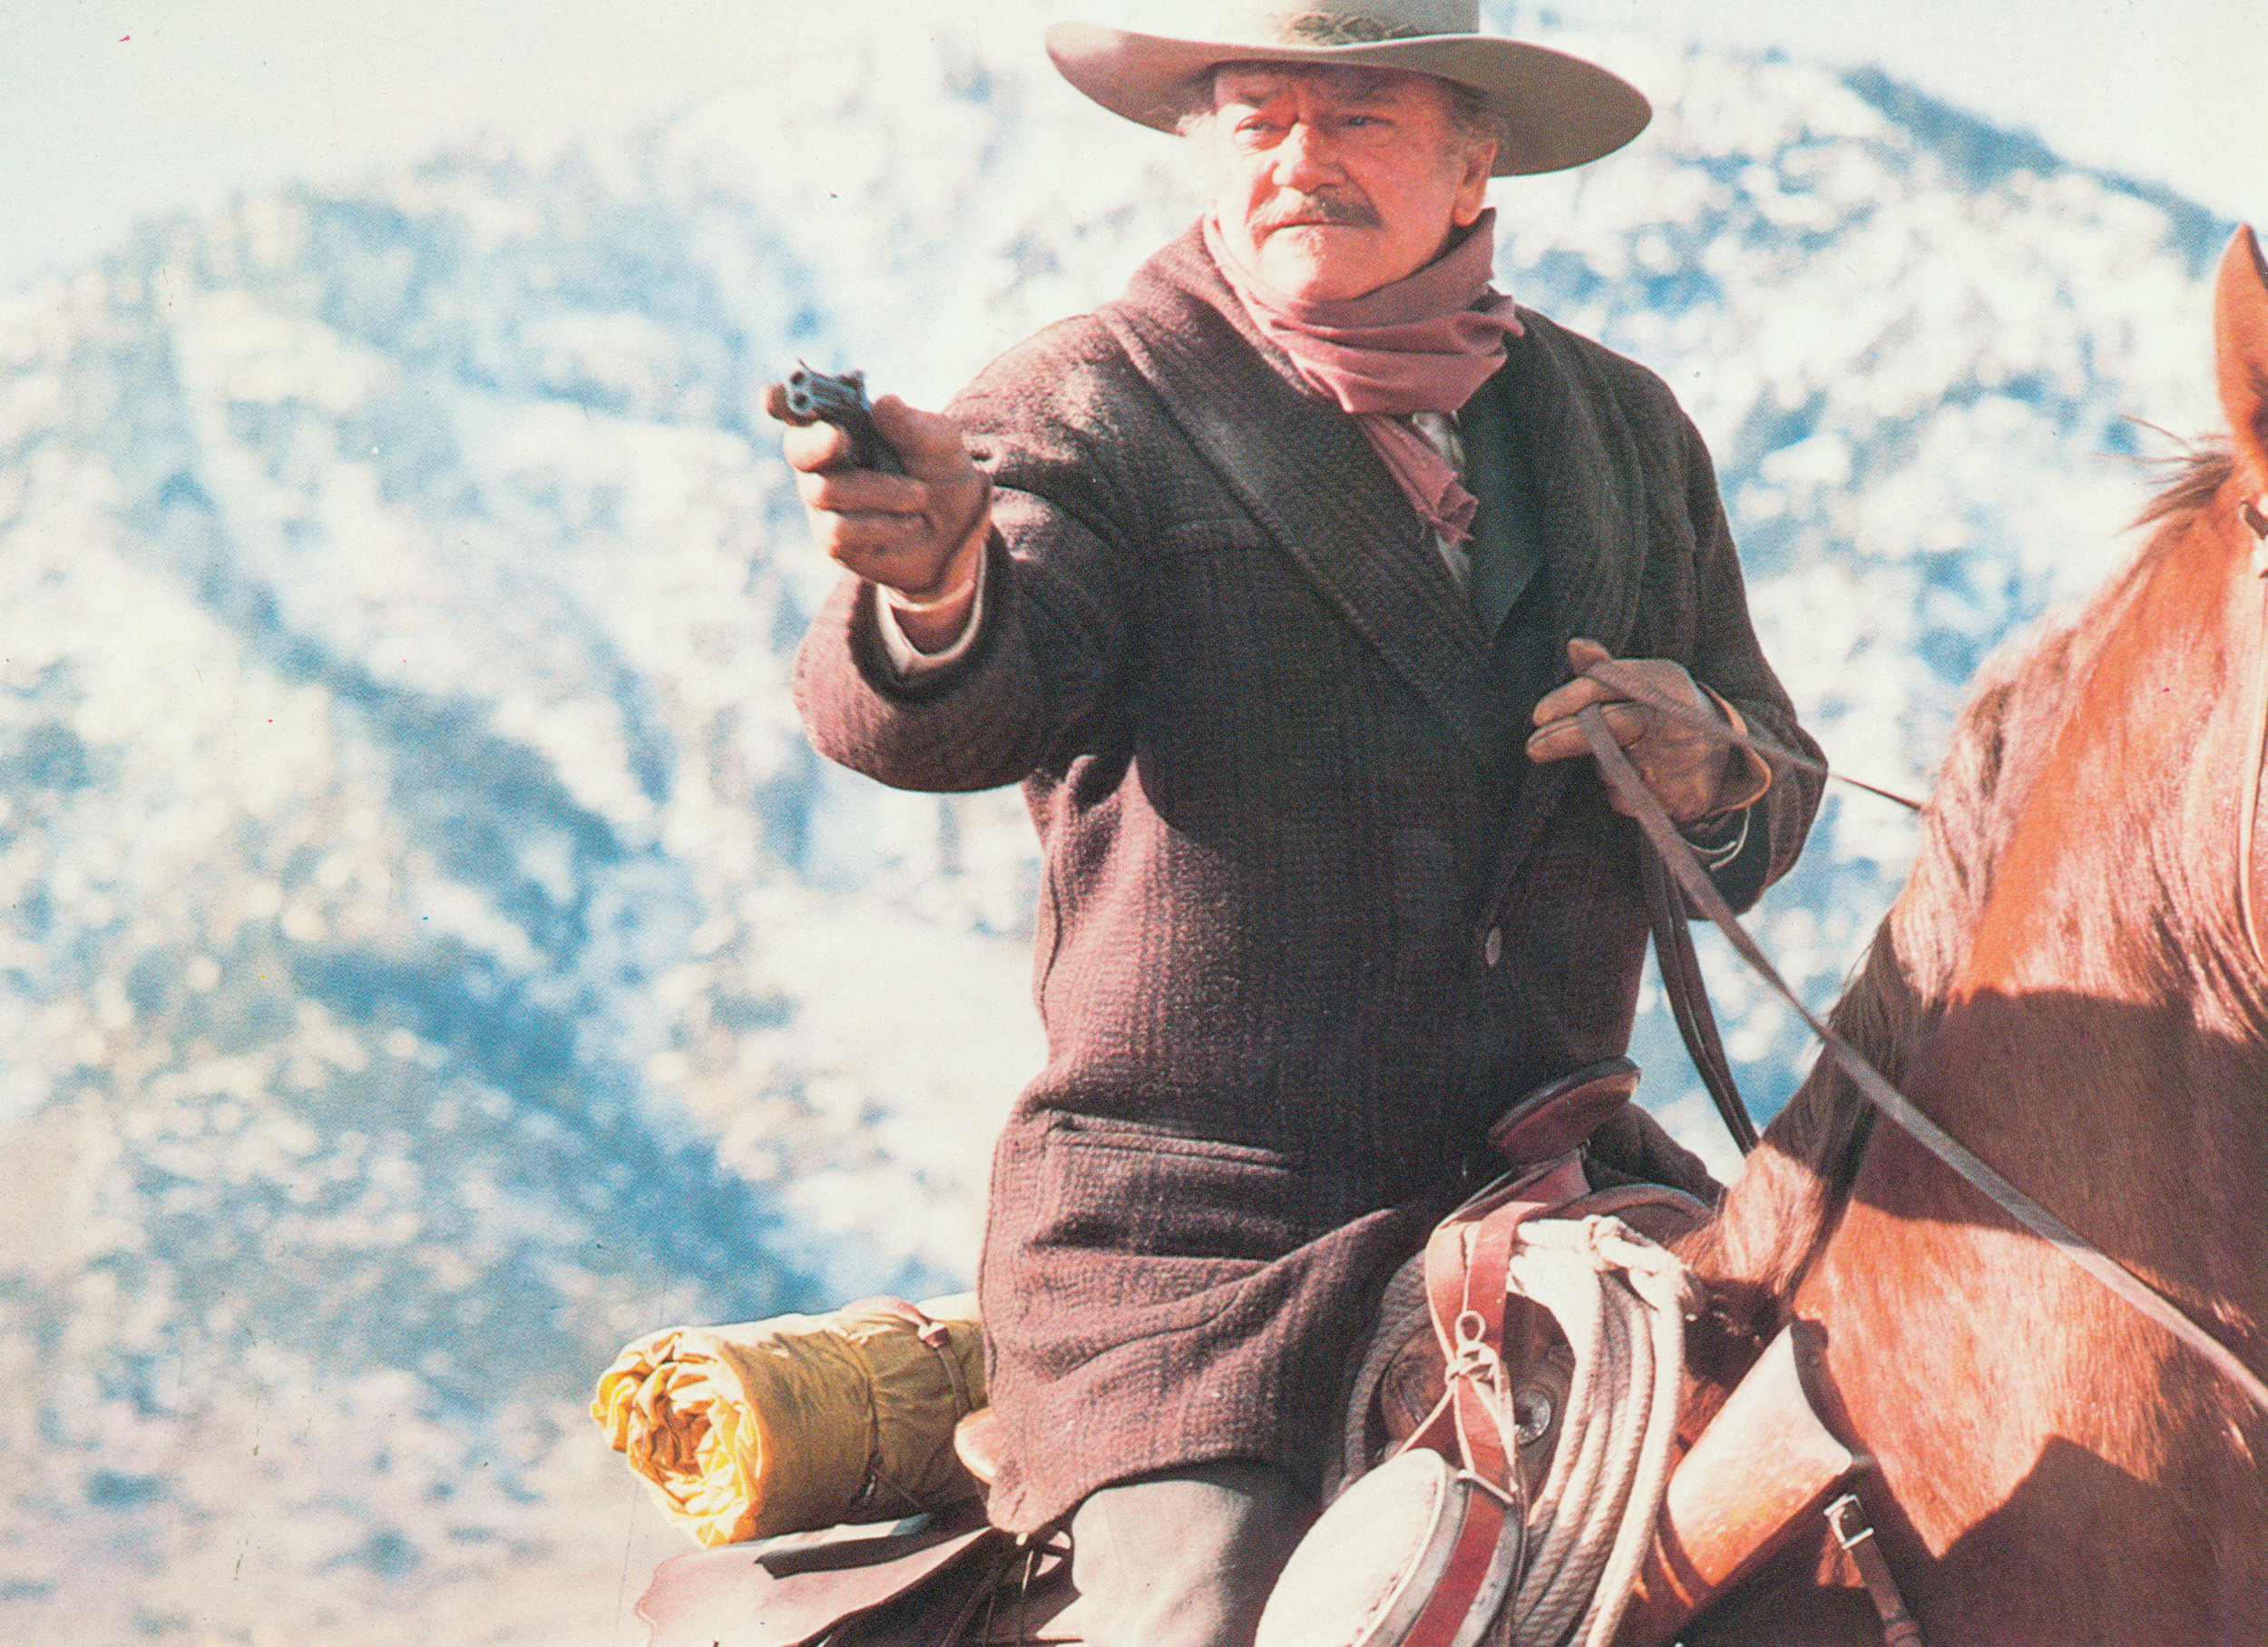 In iconic fashion, John Wayne portrays an ailing gunfighter in the  Shootist  (1976), and what would also be his final of 200 films throughout a 50-year career. Two years following, John Wayne would undergo heart surgery and again battle cancer.